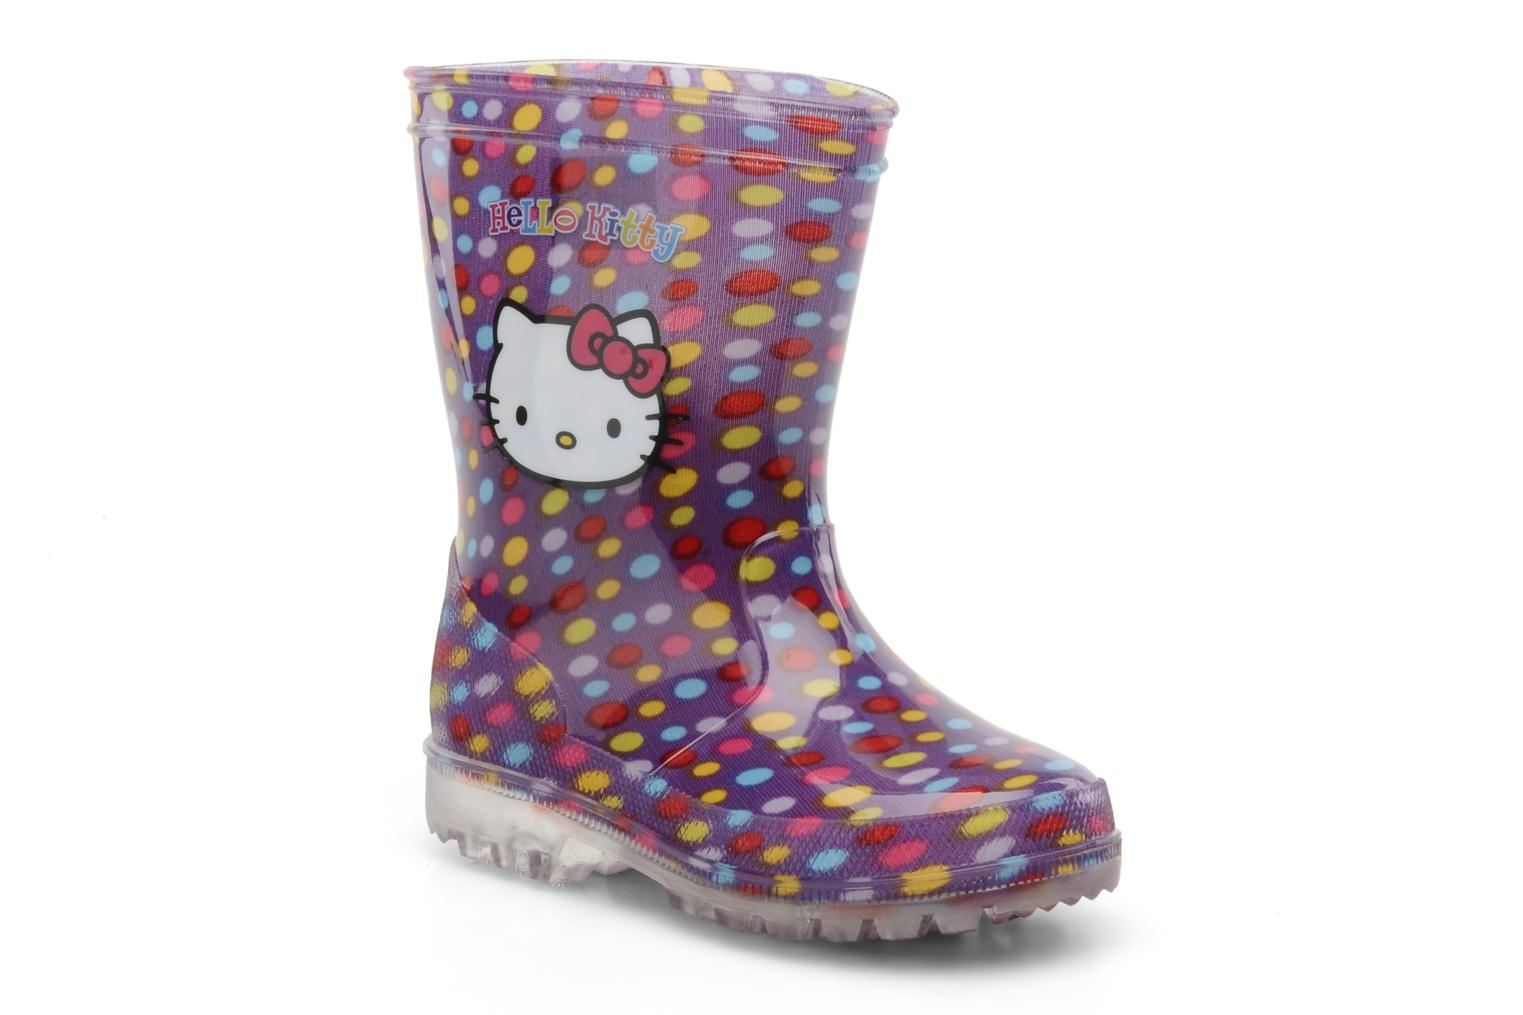 bottes de pluie enfants sarenza hello kitty hk iexene ventes pas. Black Bedroom Furniture Sets. Home Design Ideas